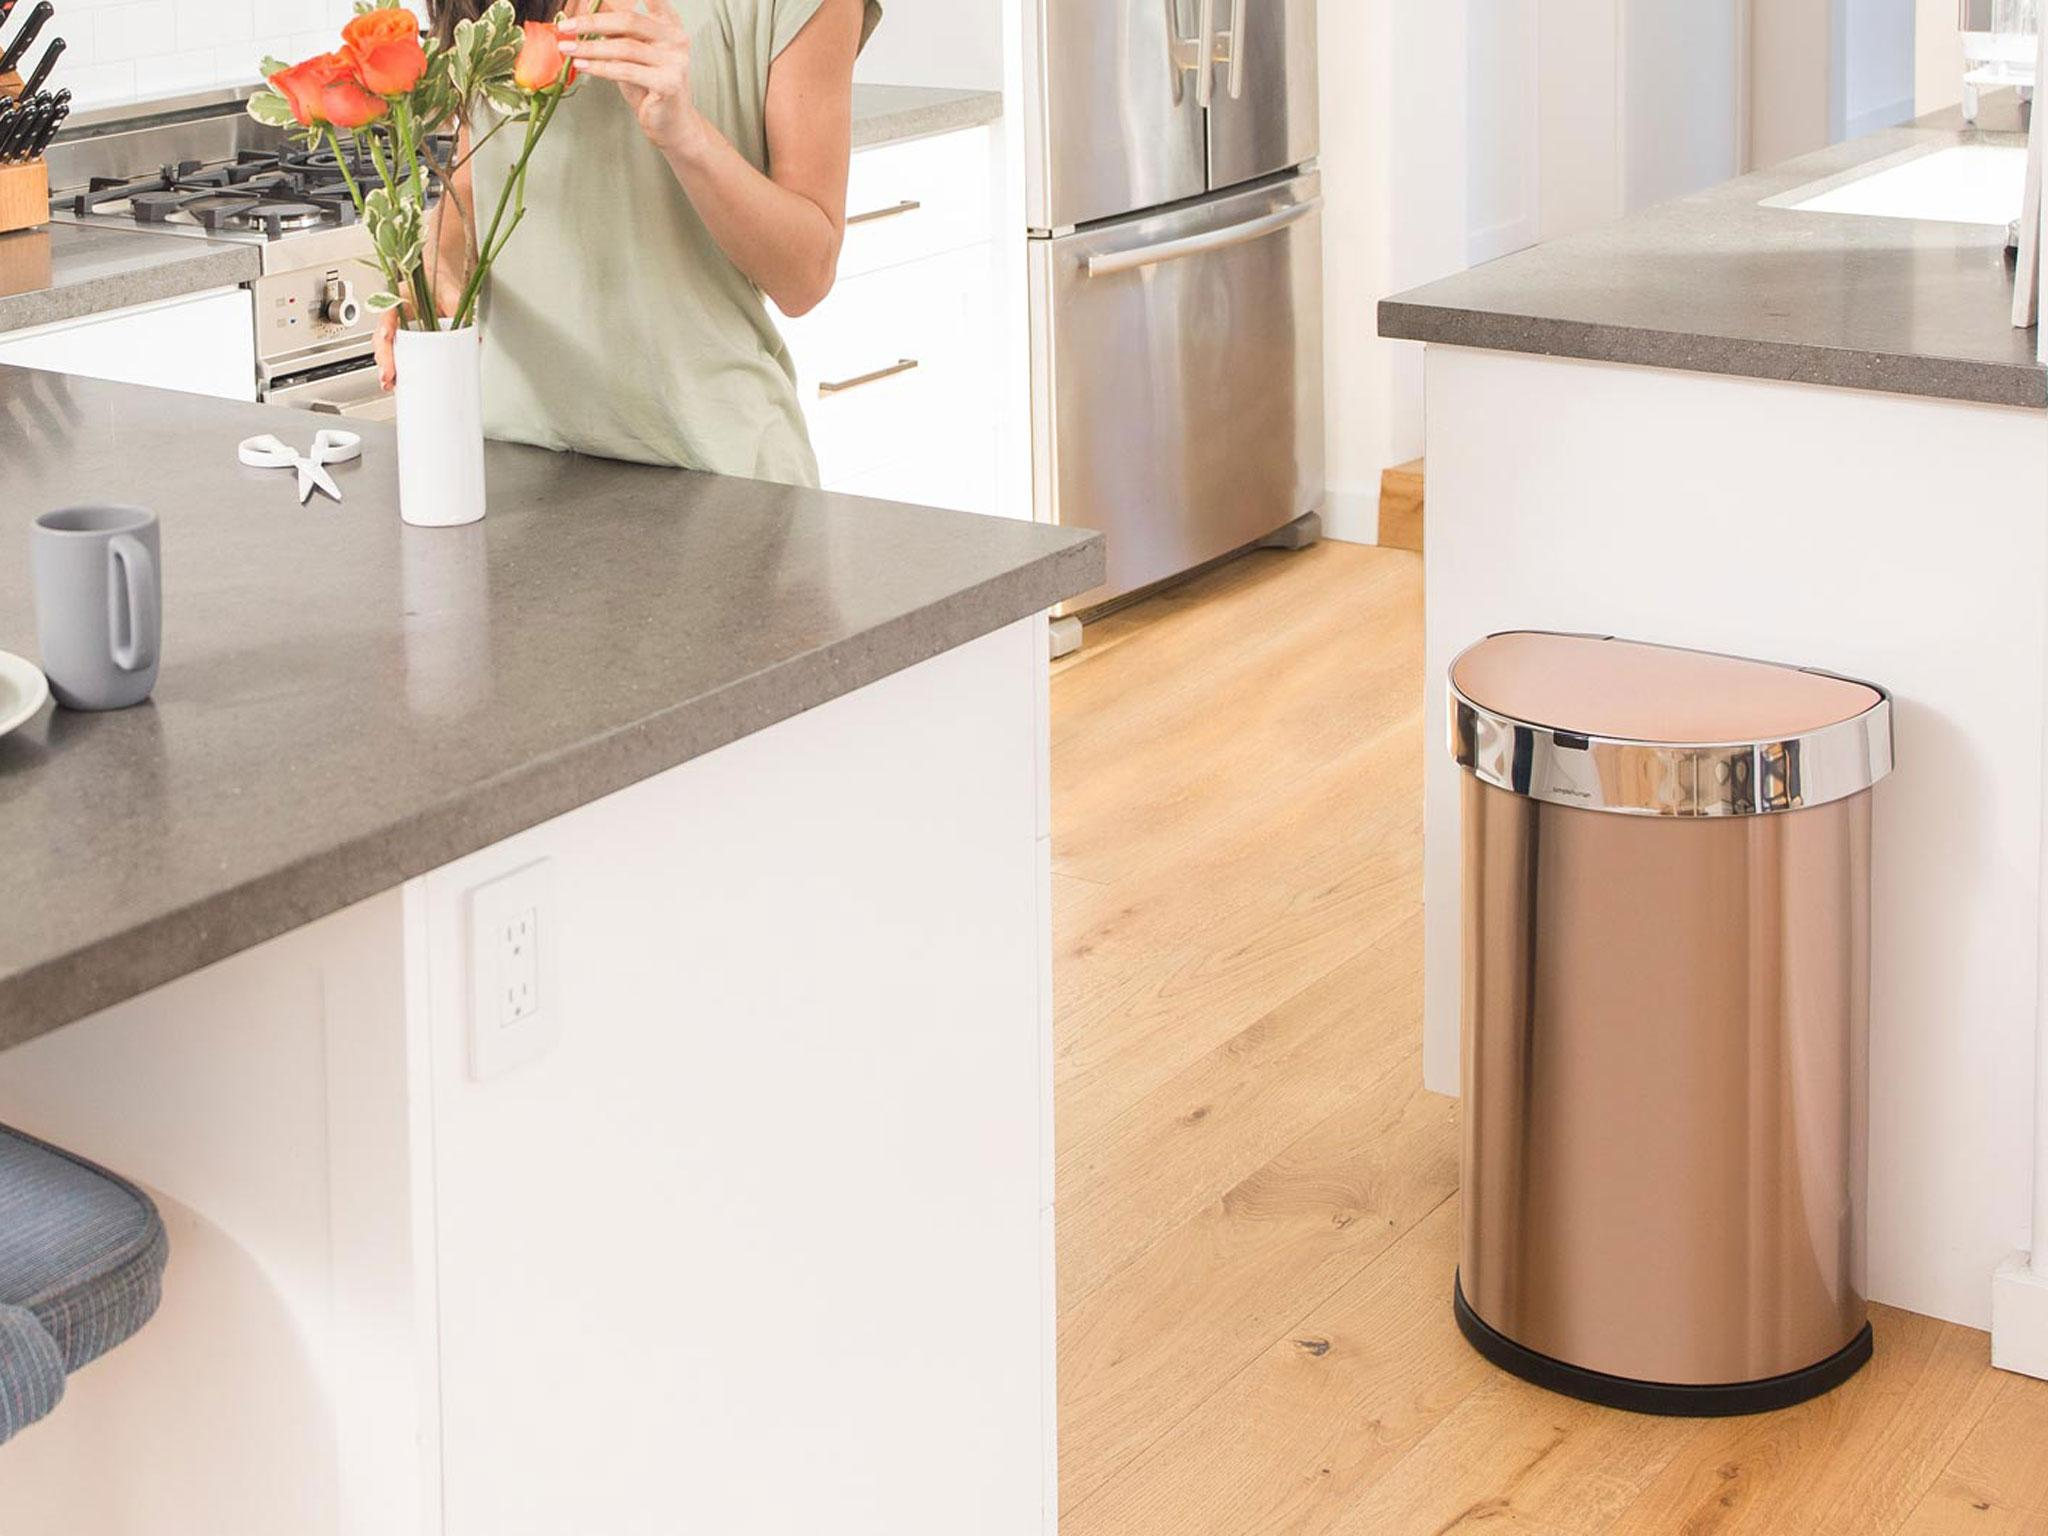 10 best kitchen bins | The Independent